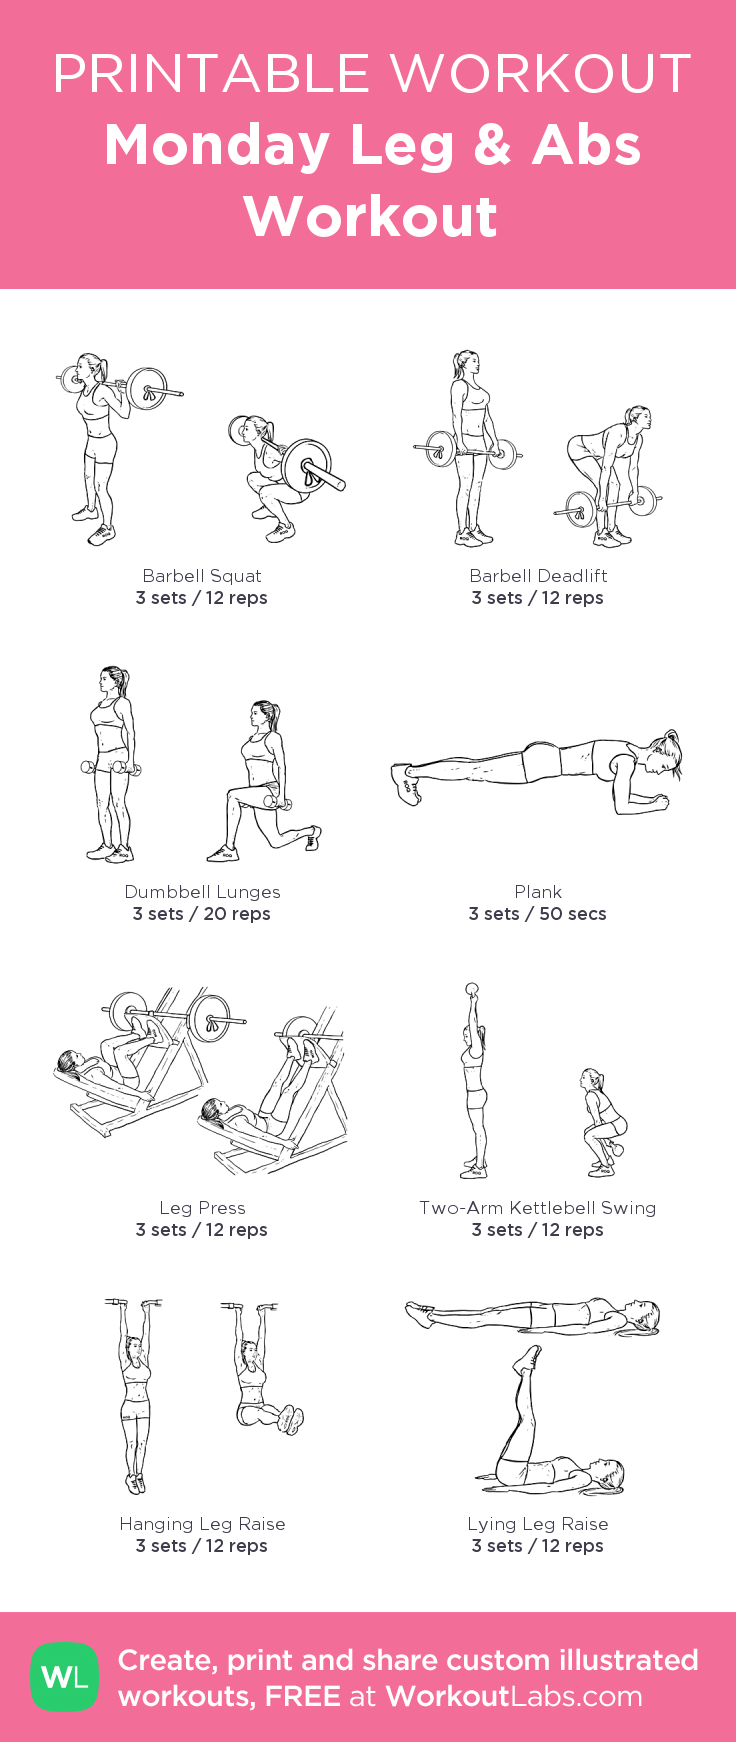 photo about Printable Ab Workout referred to as Monday Leg Stomach muscles Exercise session: my customized printable work out via